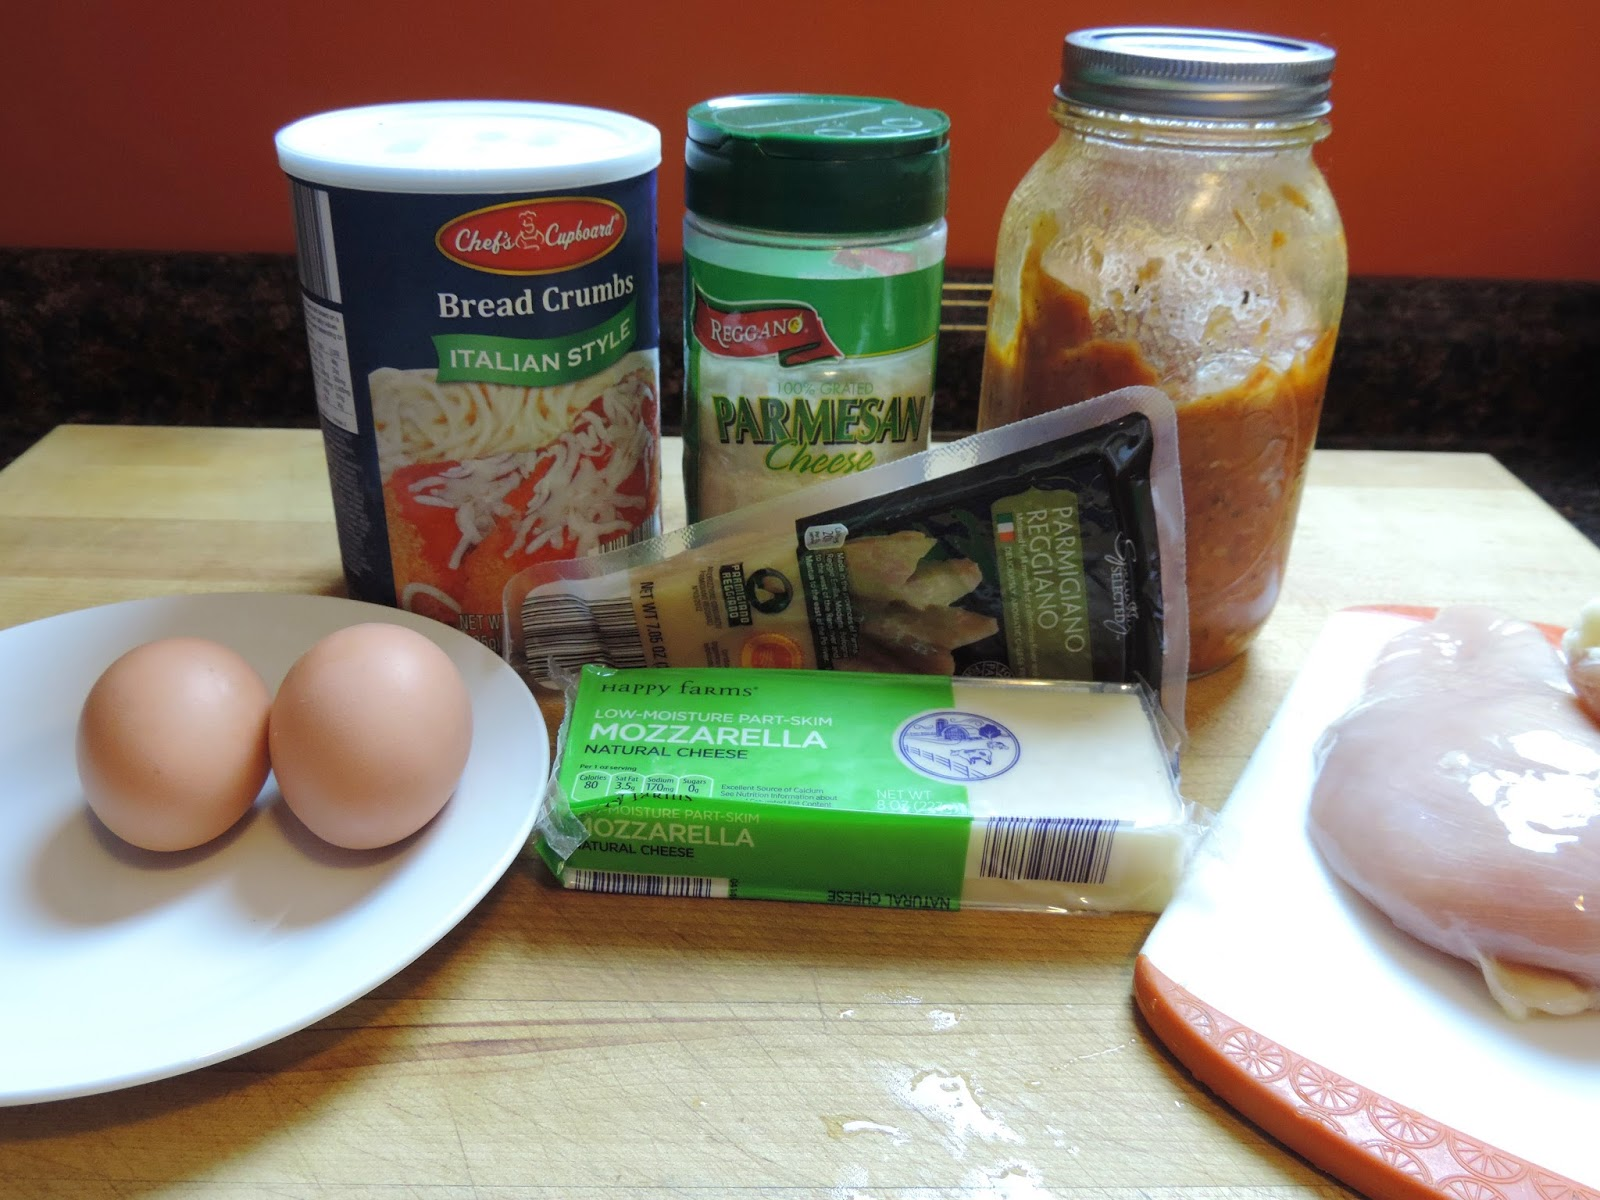 The ingredients needed for the chicken Parmesan.